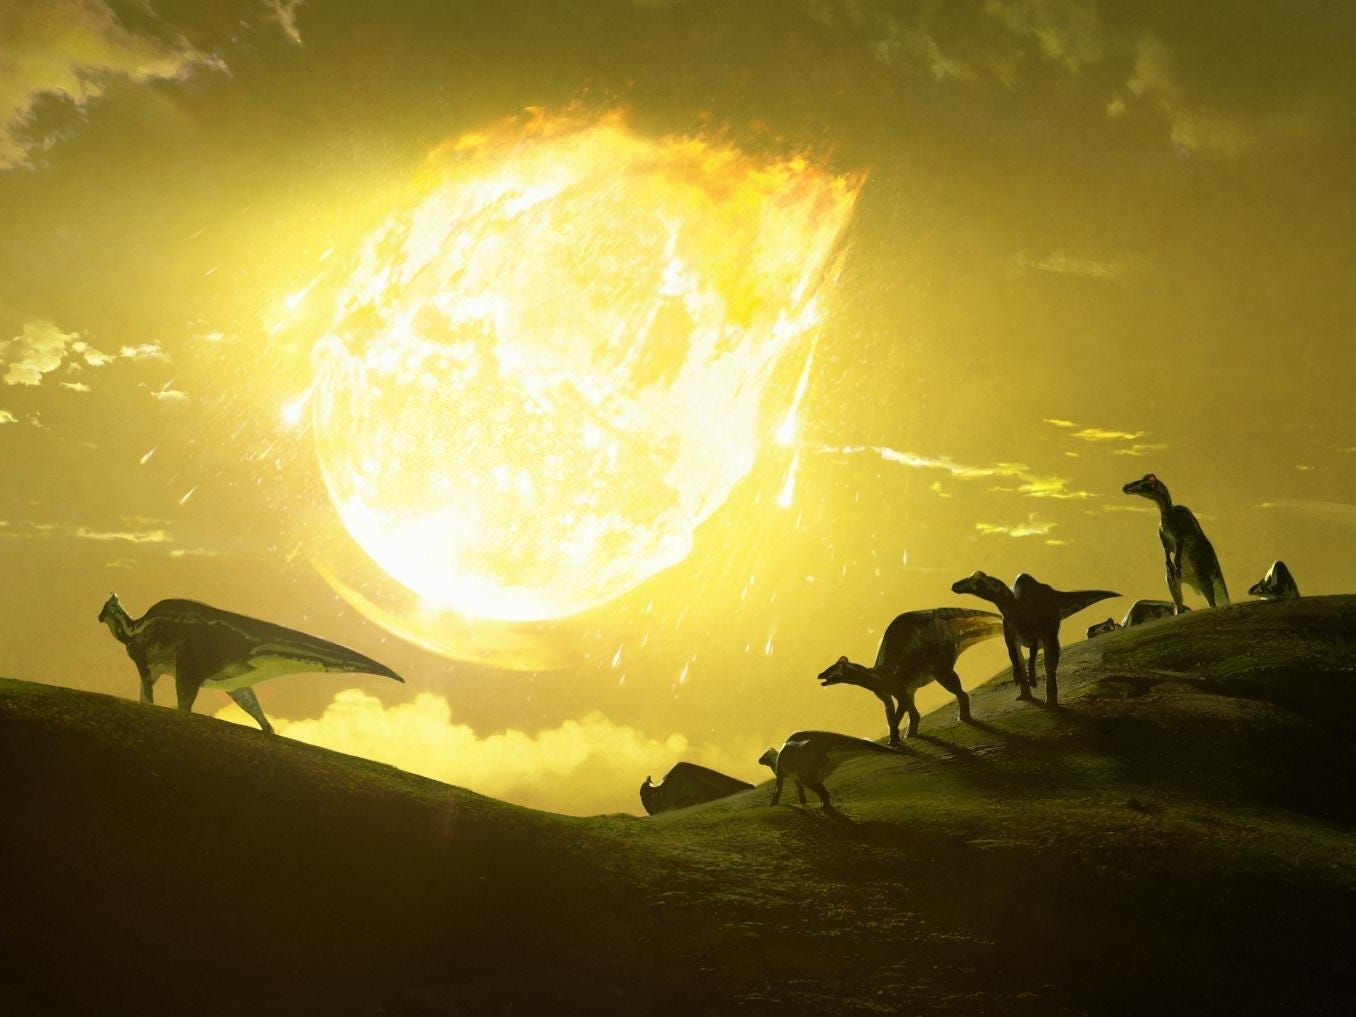 The space rock that doomed the dinosaurs was shrapnel from a comet that flew too close to the sun, a Harvard study suggests